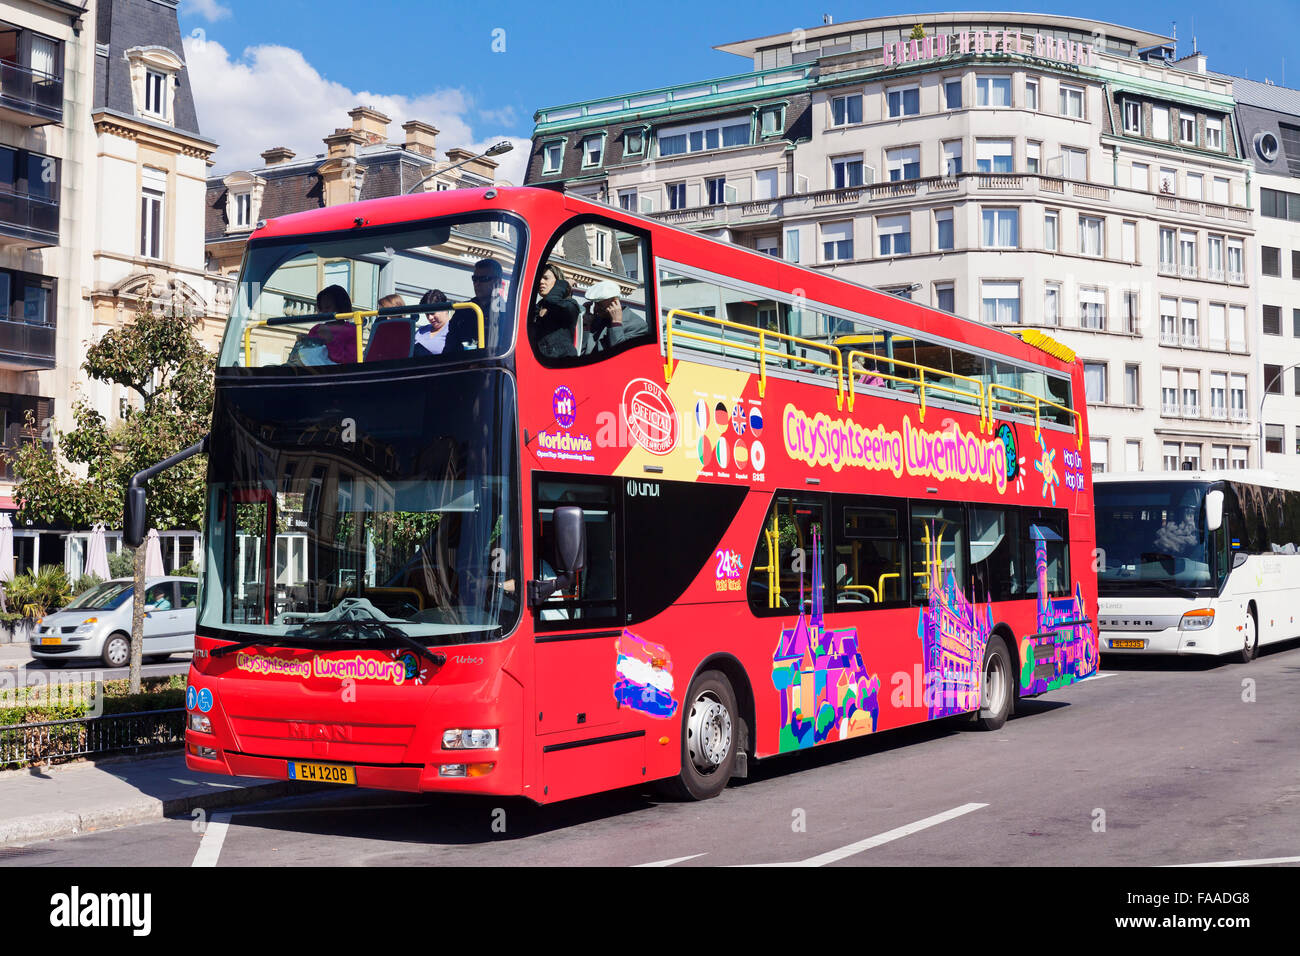 Sightseeing bus, Place de la Constitution, Luxembourg City, Grand Duchy of Luxembourg - Stock Image